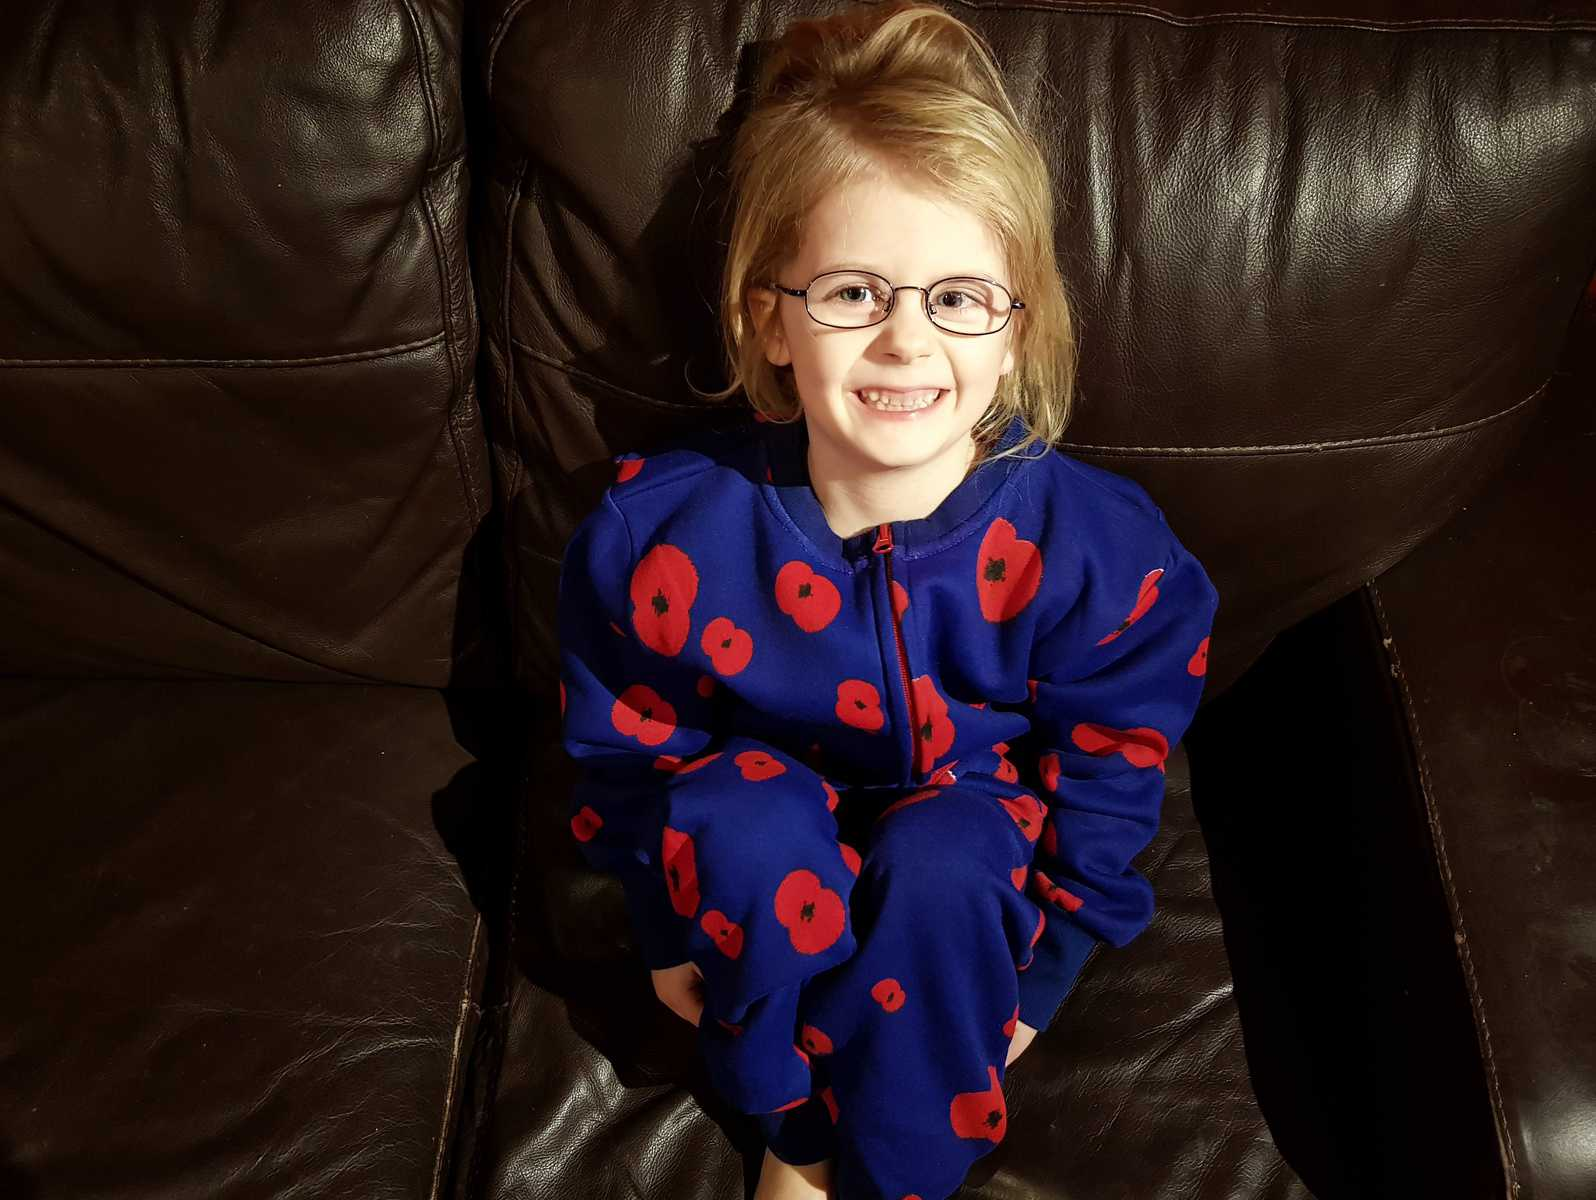 little girl in a blue onesie with red poppies on it